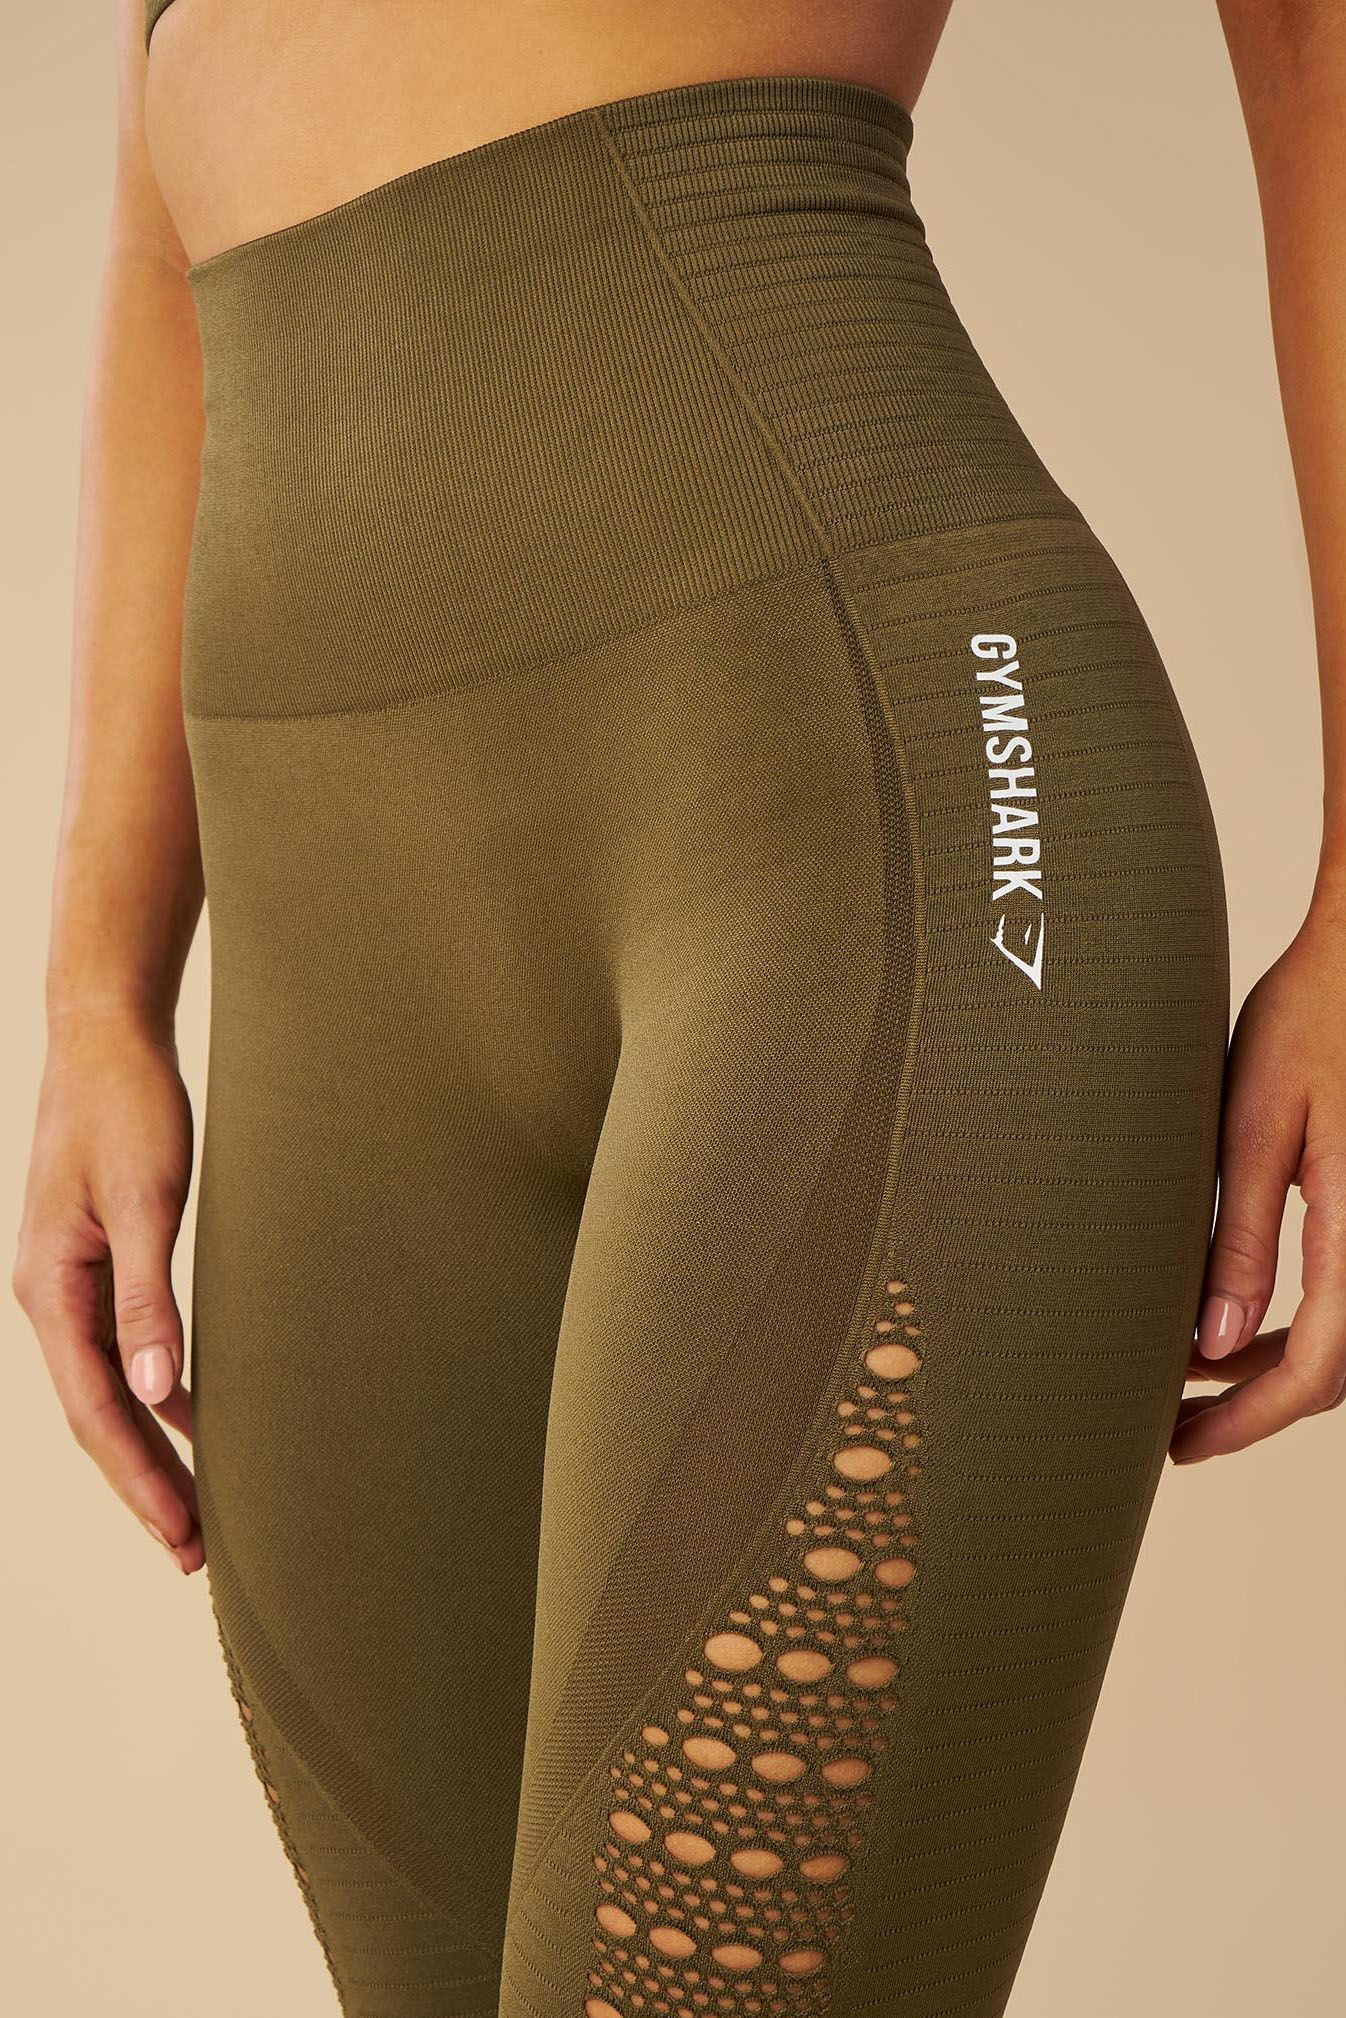 97583f70f1606 Complete with eyelet detailing to the ankle and thigh, the Energy Seamless  Leggings are a